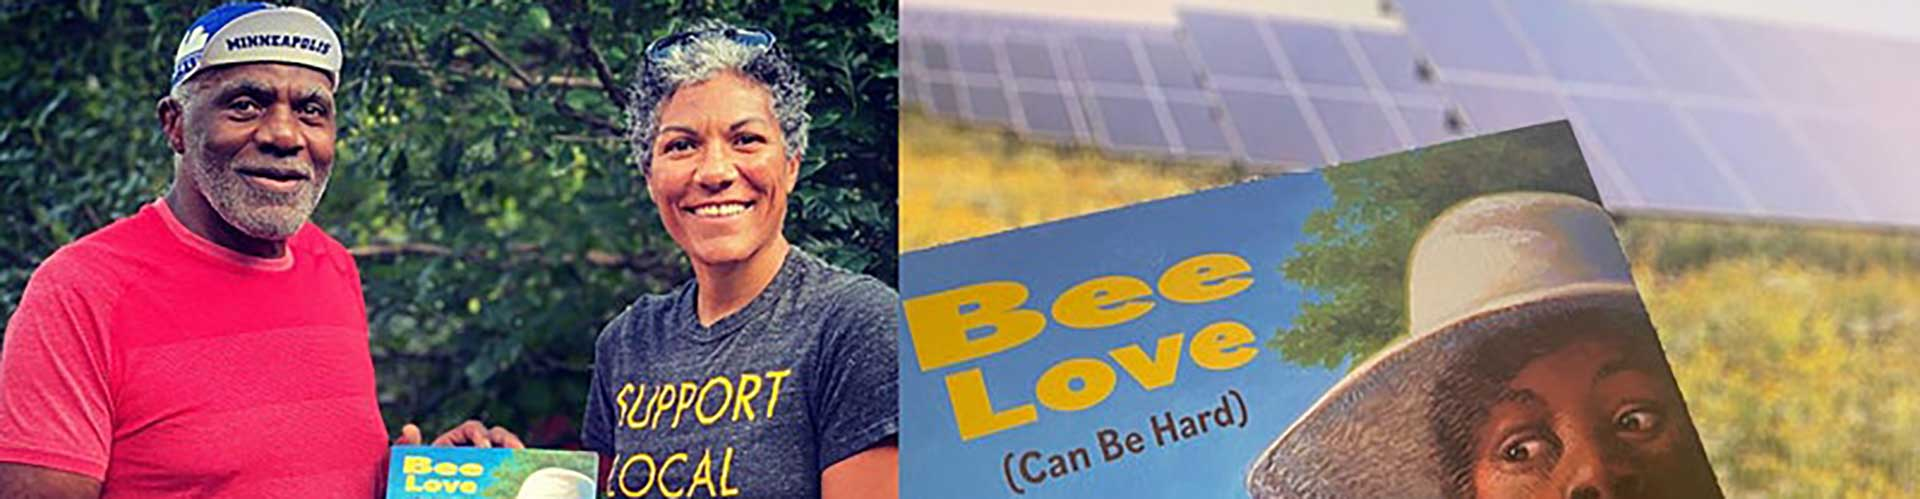 February 12 | Bee love and the Co-benefits of Solar